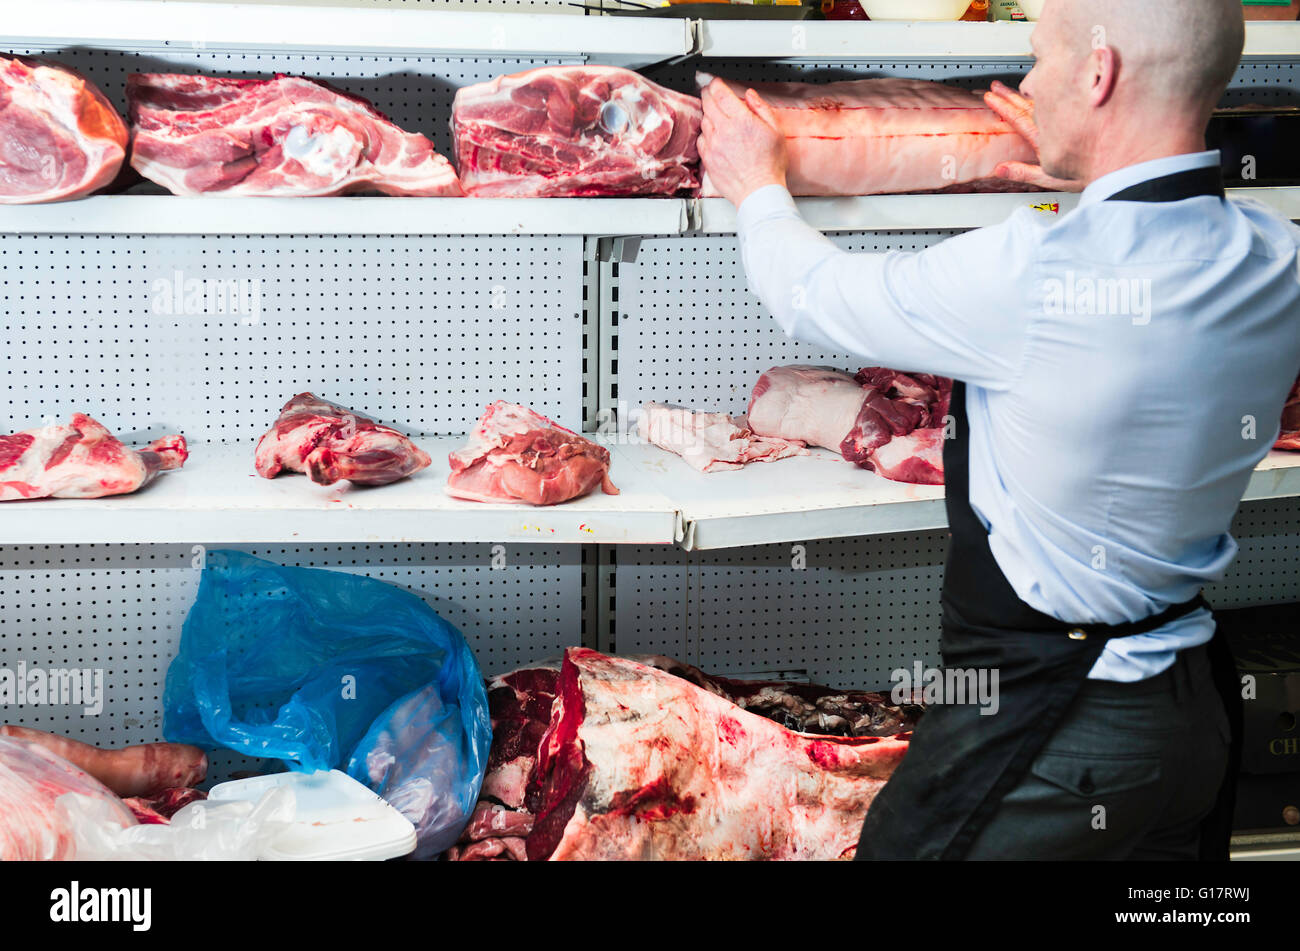 Butcher placing joint of meat on refrigerated cabinet, rear view - Stock Image